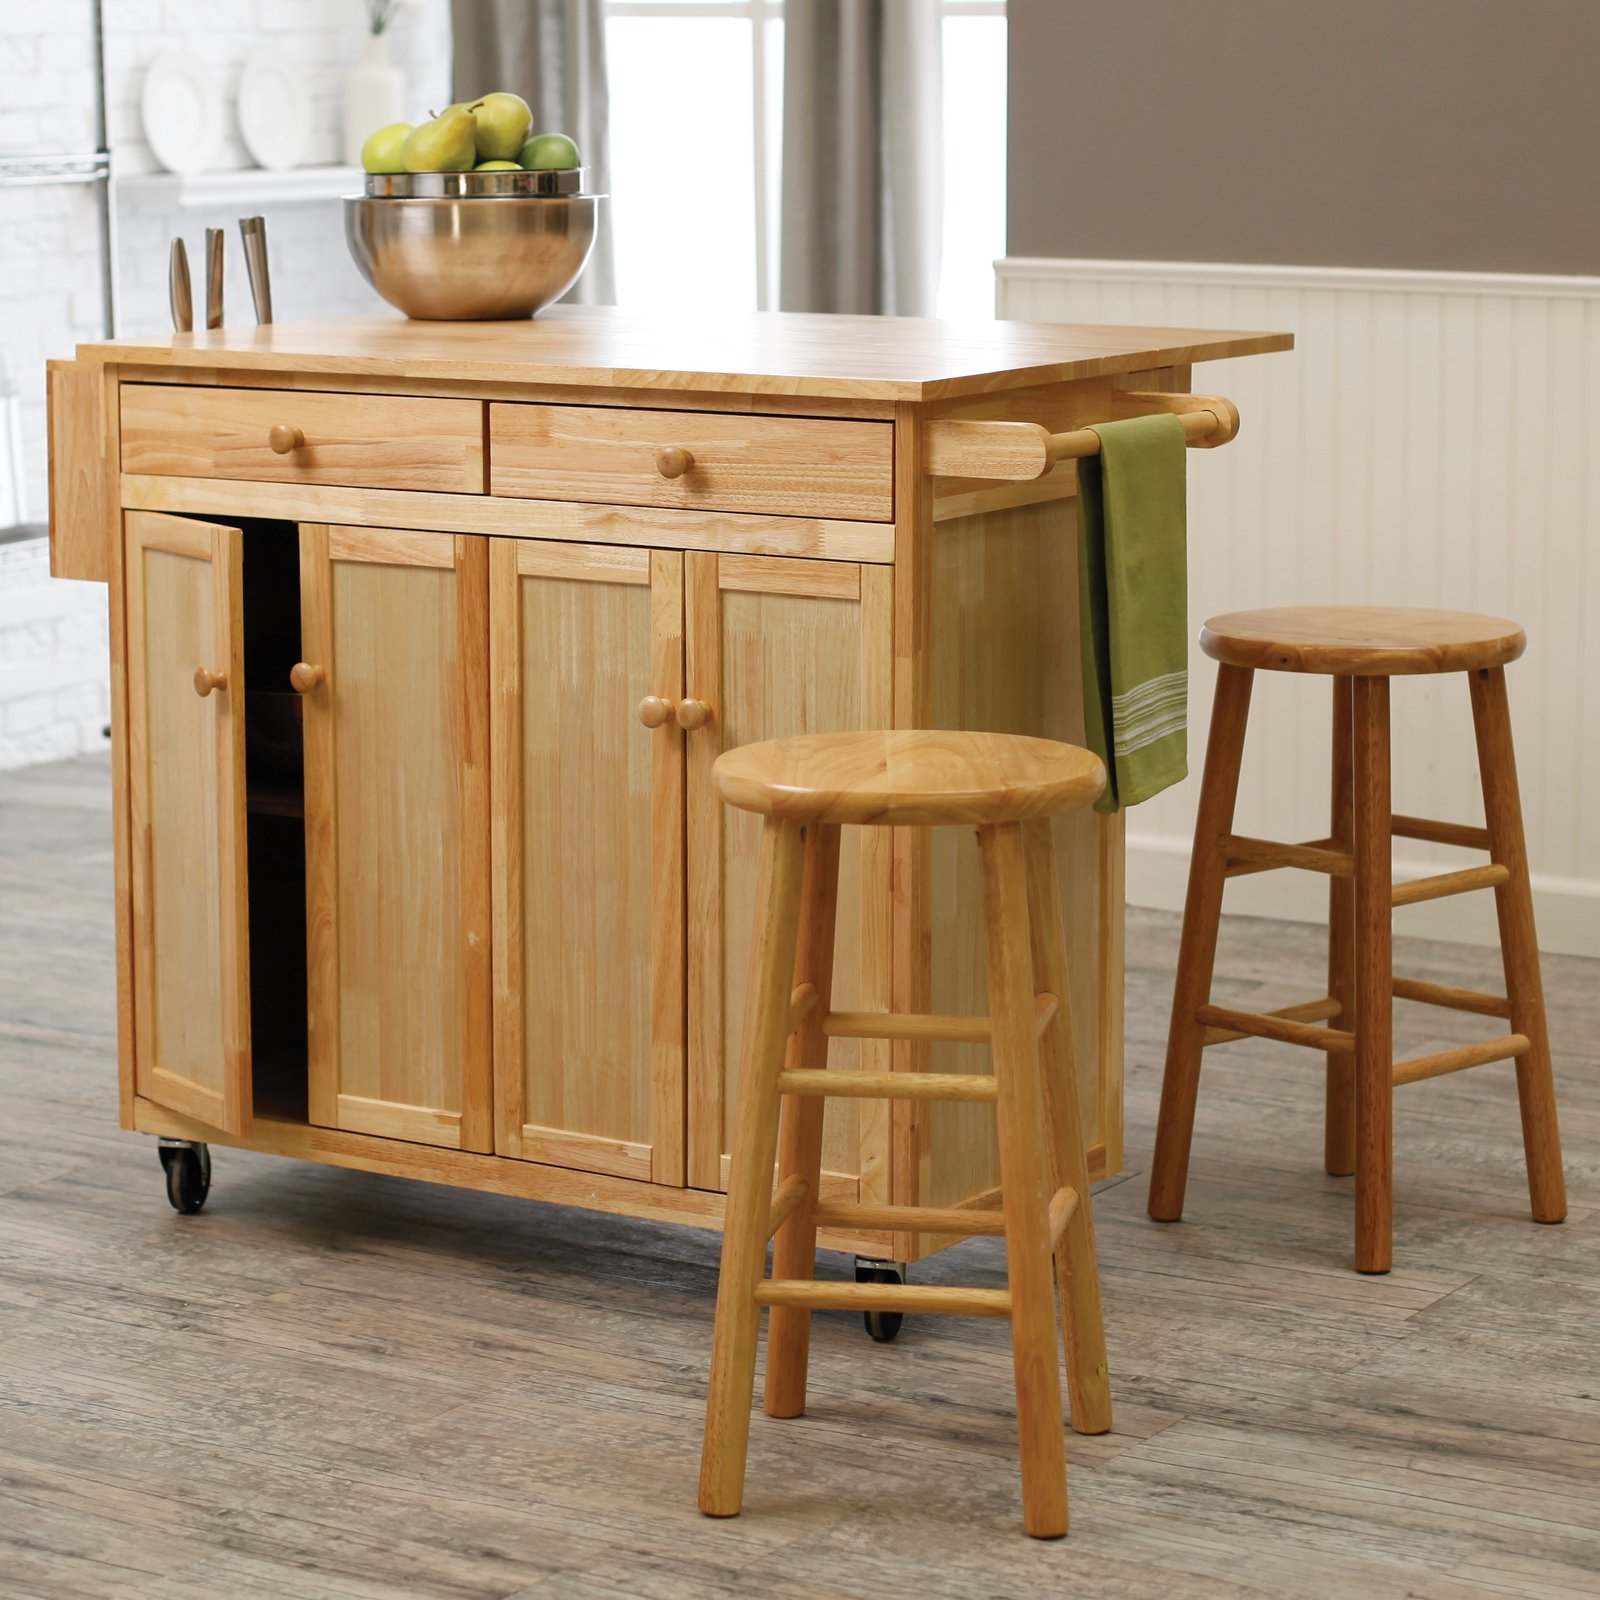 kitchen islands on casters kitchen island on casters homesfeed 8527